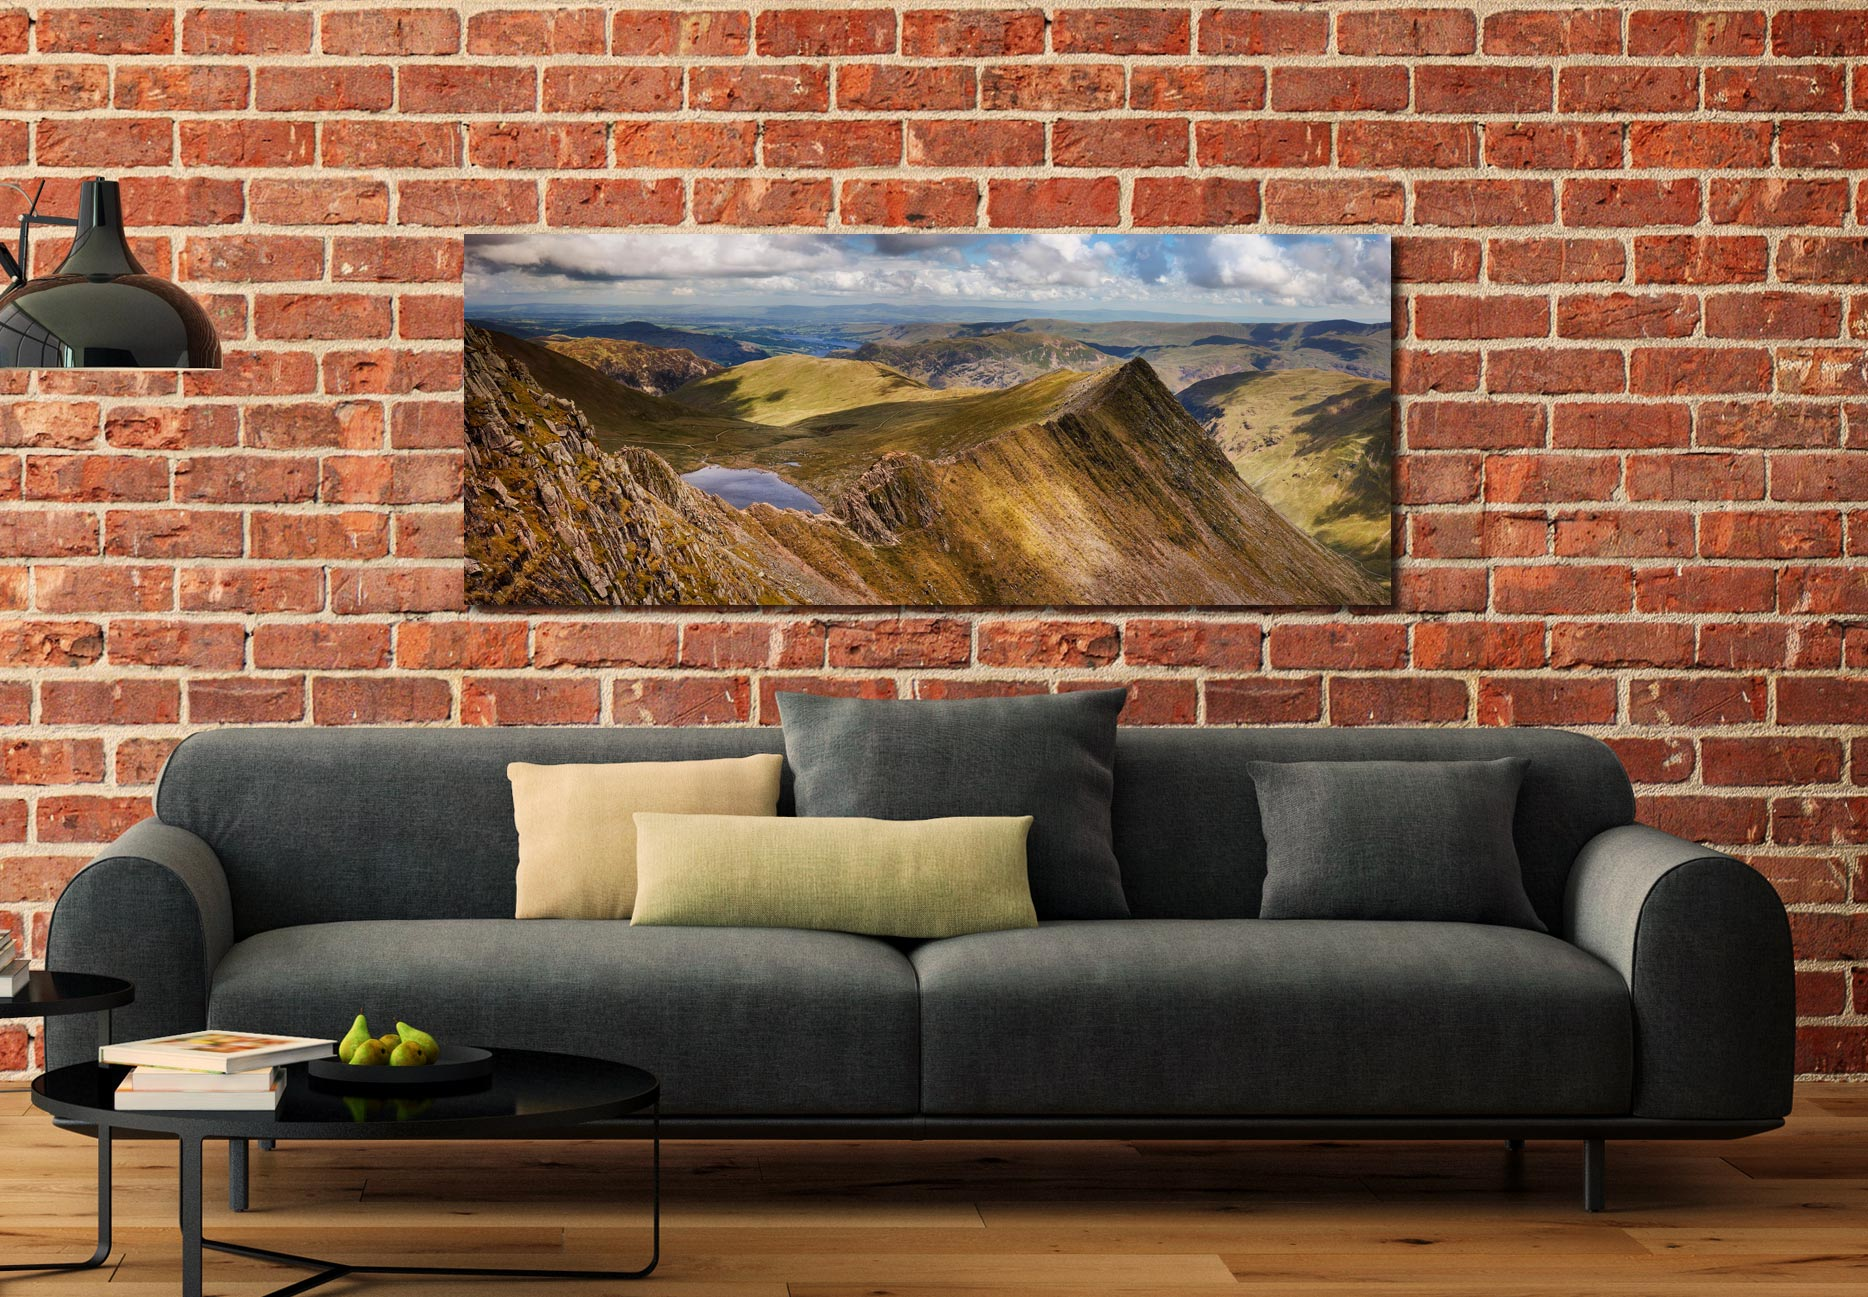 Striding Edge Panorama - Print Aluminium Backing With Acrylic Glazing on Wall